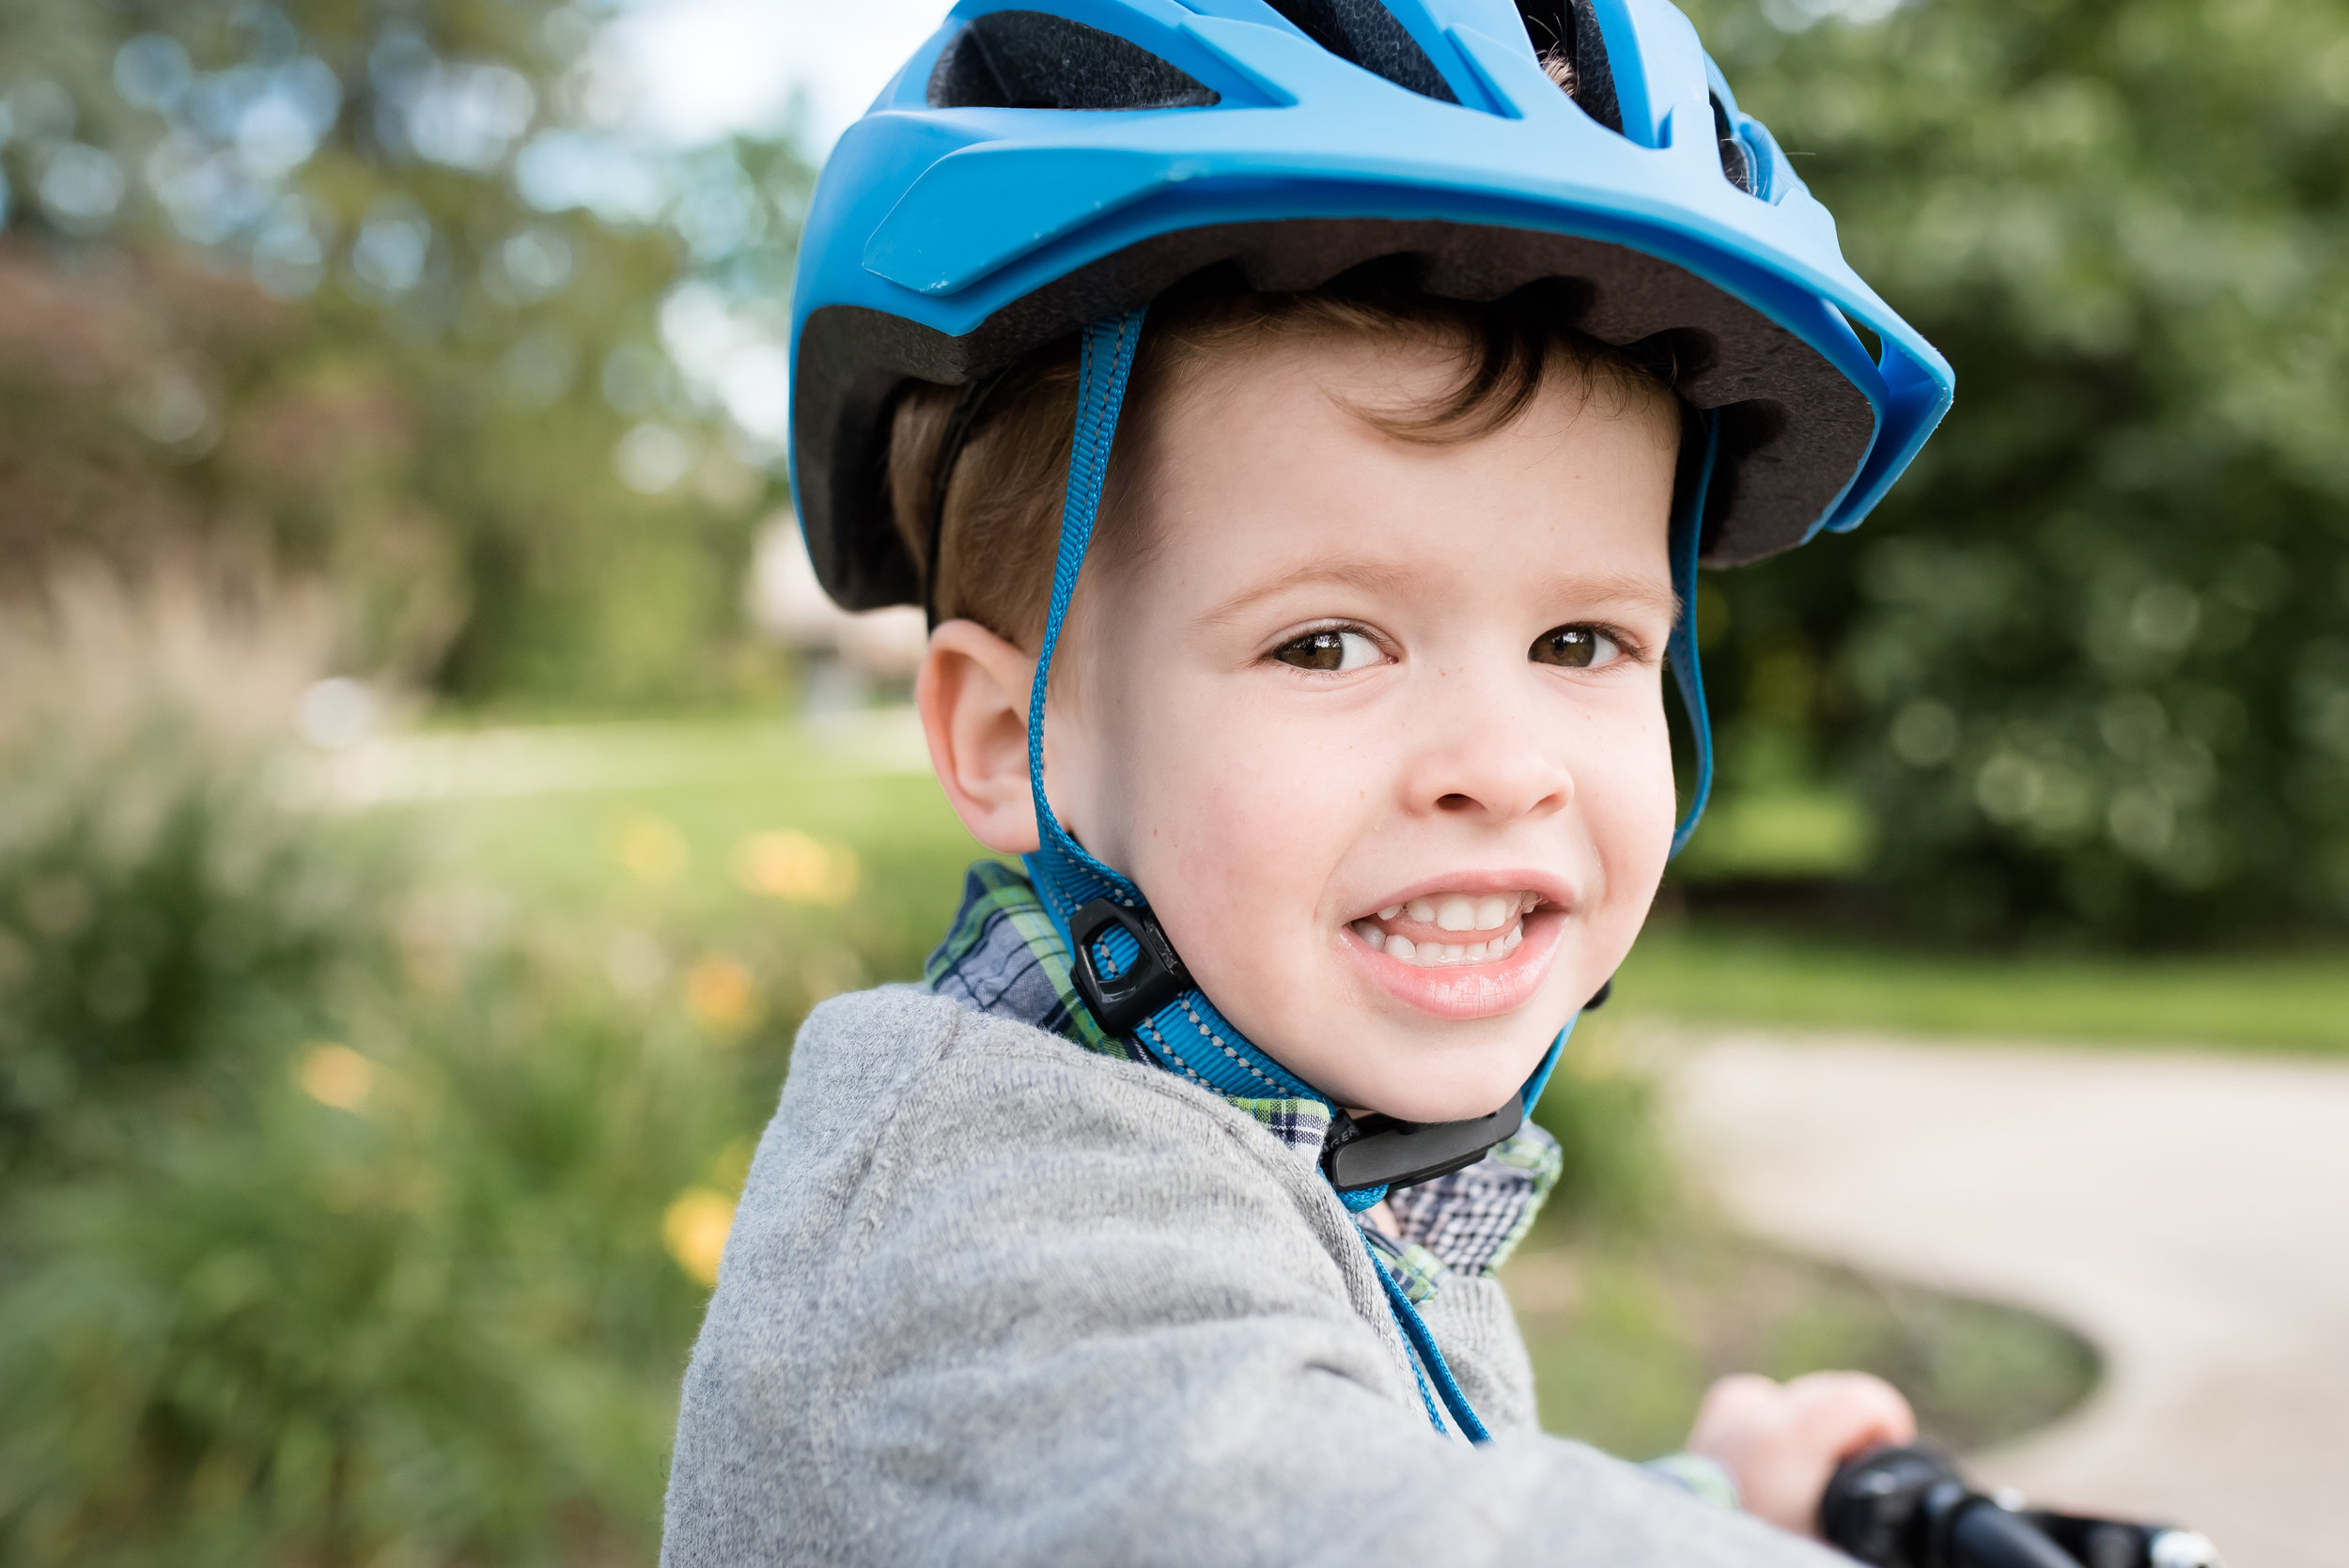 This big kid learned how to ride a bike this year. And he does it REALLY well - no training wheels or anything!